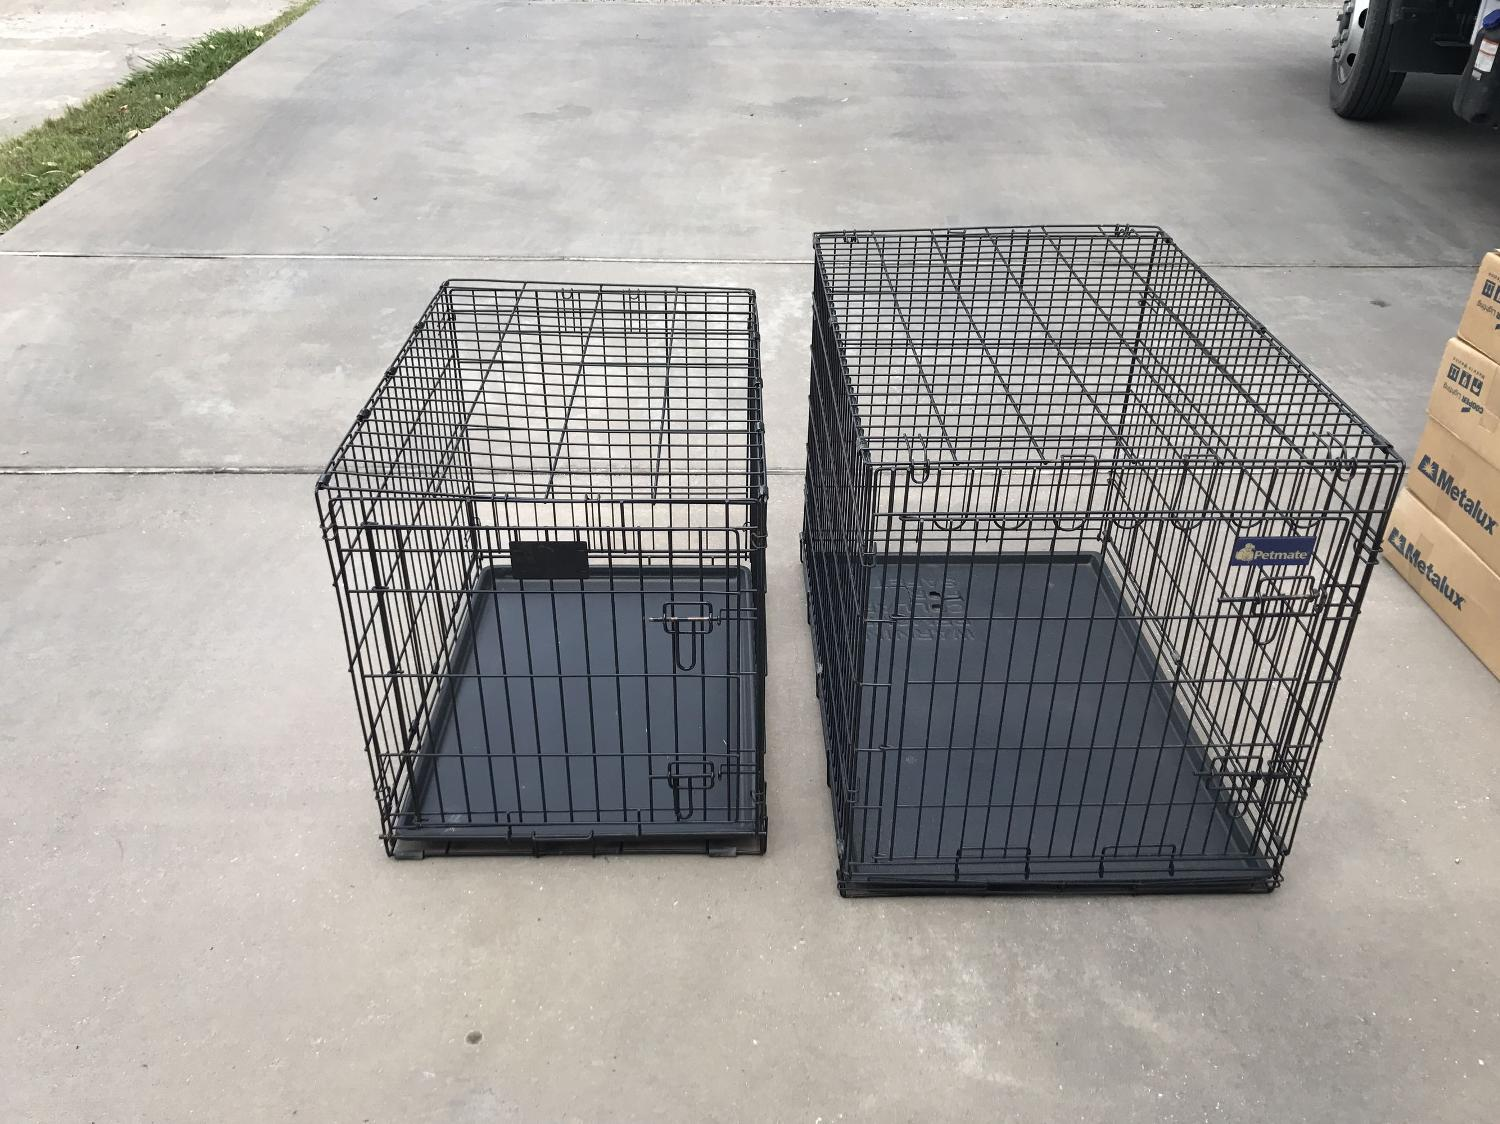 Dog Kennels For Sale In New Orleans